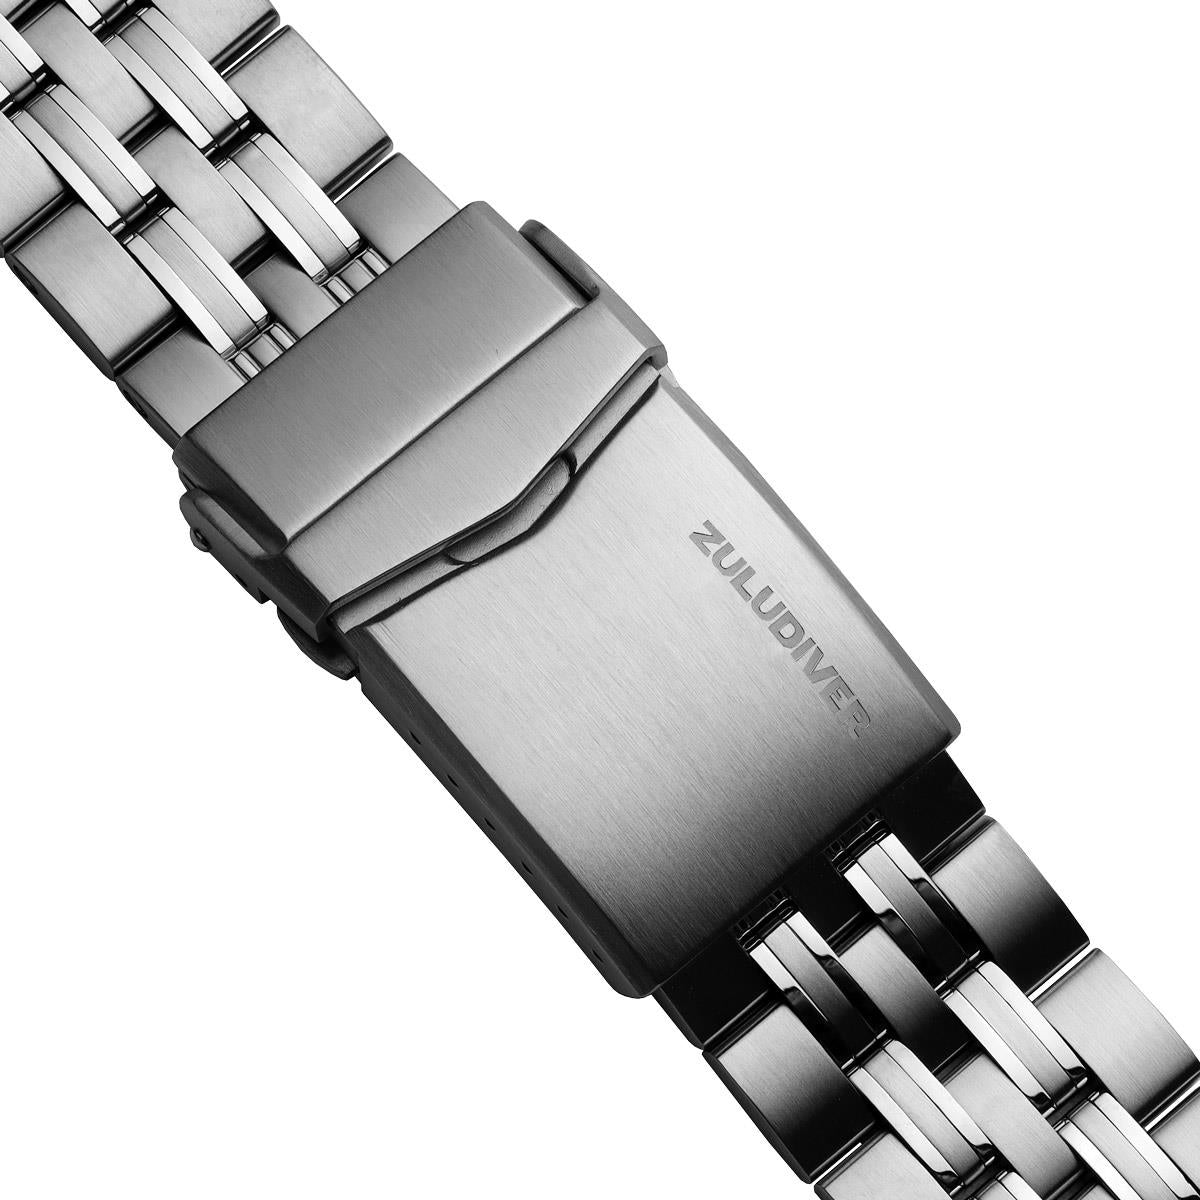 ZULUDIVER Seabrook Solid Stainless Steel Diver's Watch Strap